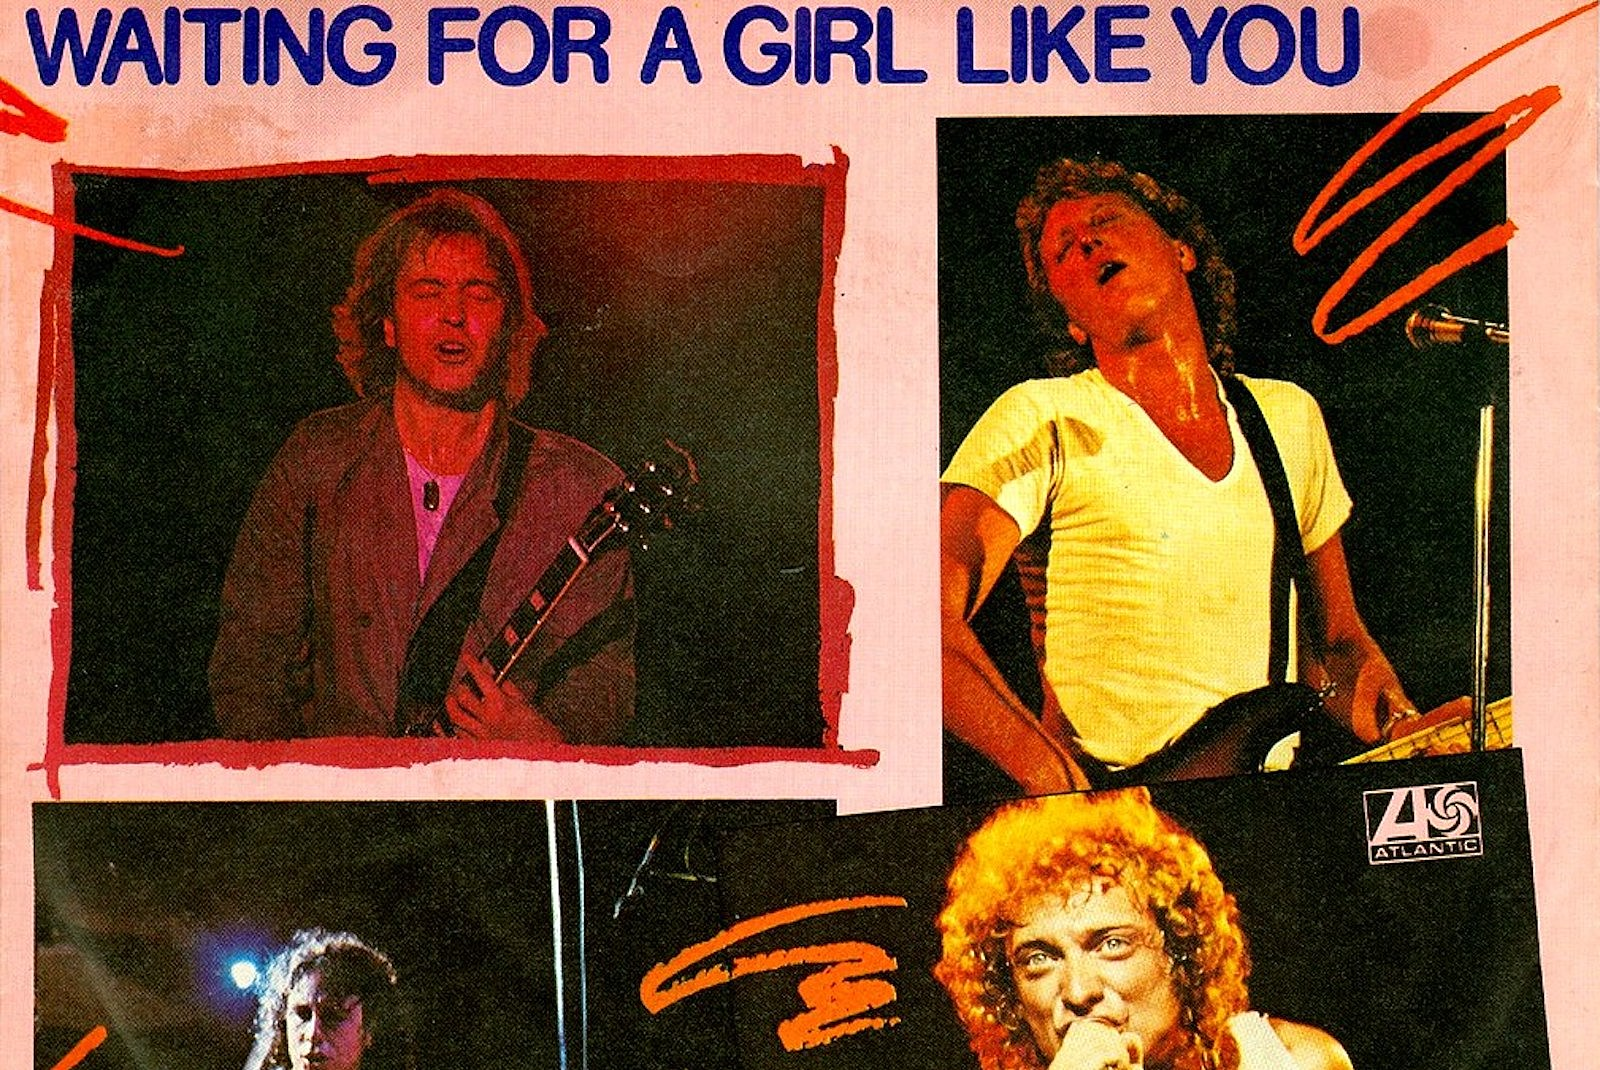 How Foreigner Changed Gears With 'Waiting for a Girl Like You'